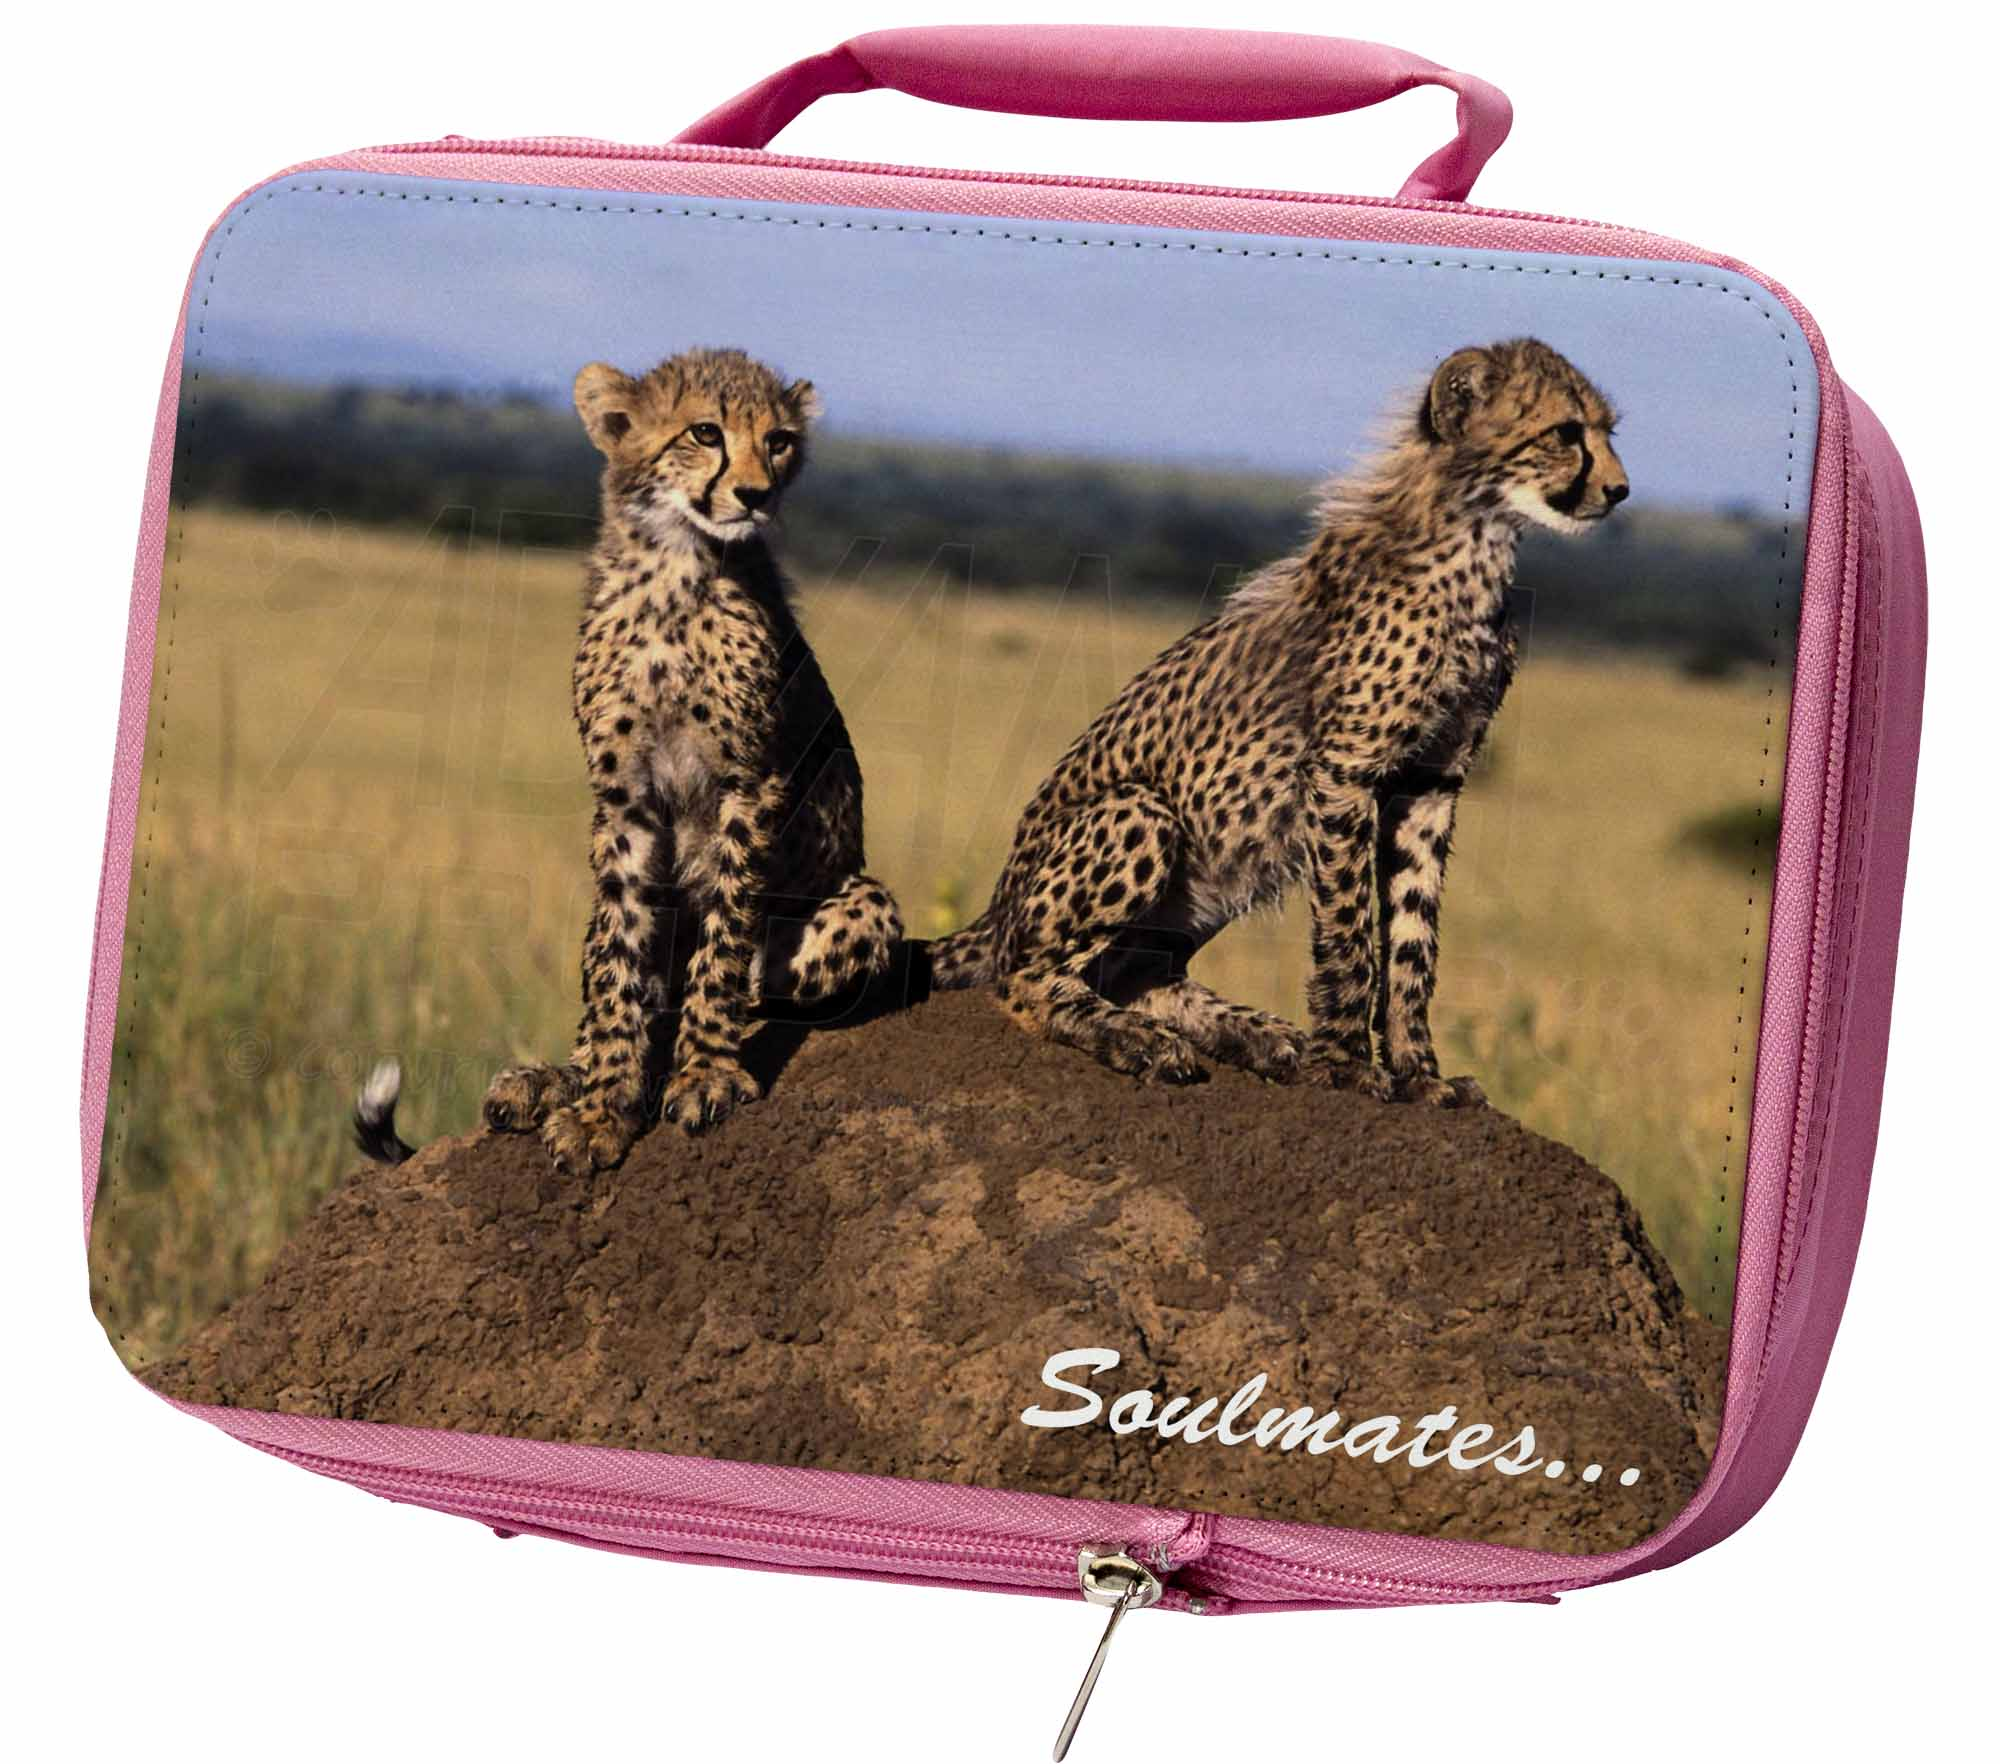 Two-Cheetahs-039-Soulmates-039-Insulated-Pink-School-Lunch-Box-Bag-SOUL-80LBP